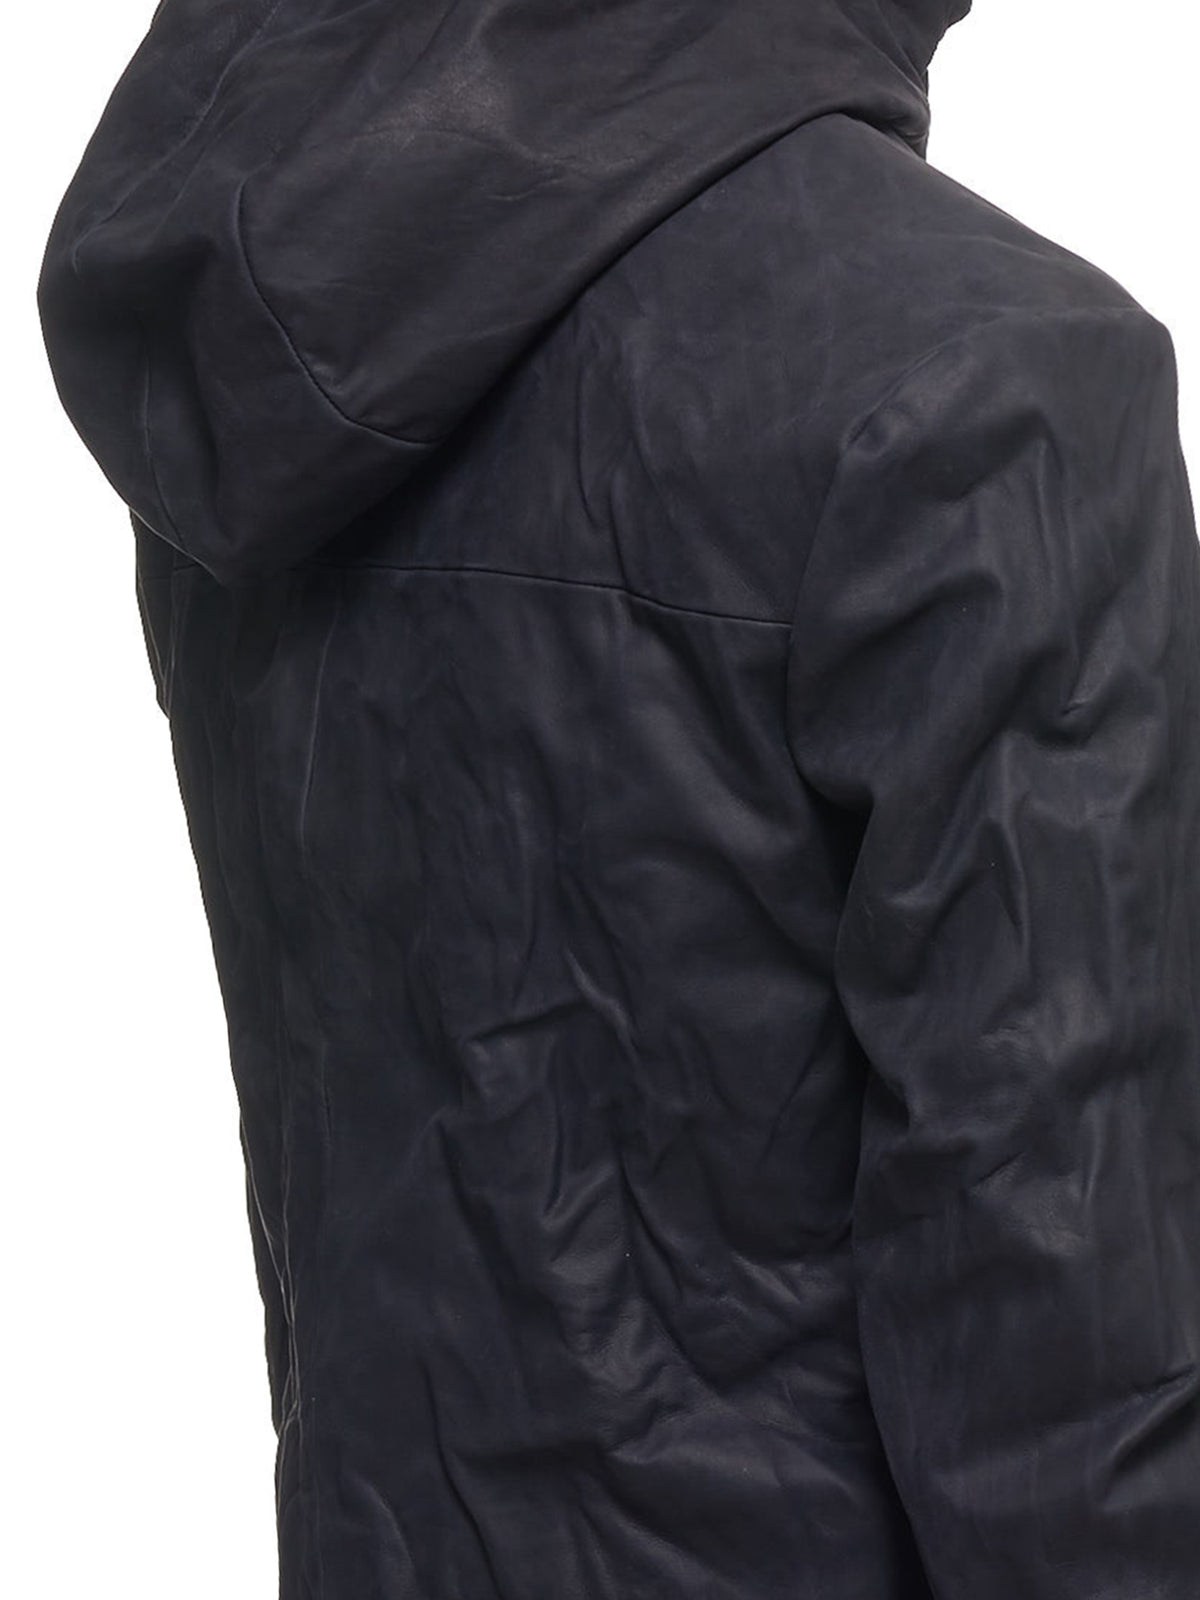 Hooded Leather Racer Jacket (J224HZ-J224HZ-DAV0-5-BLACK)